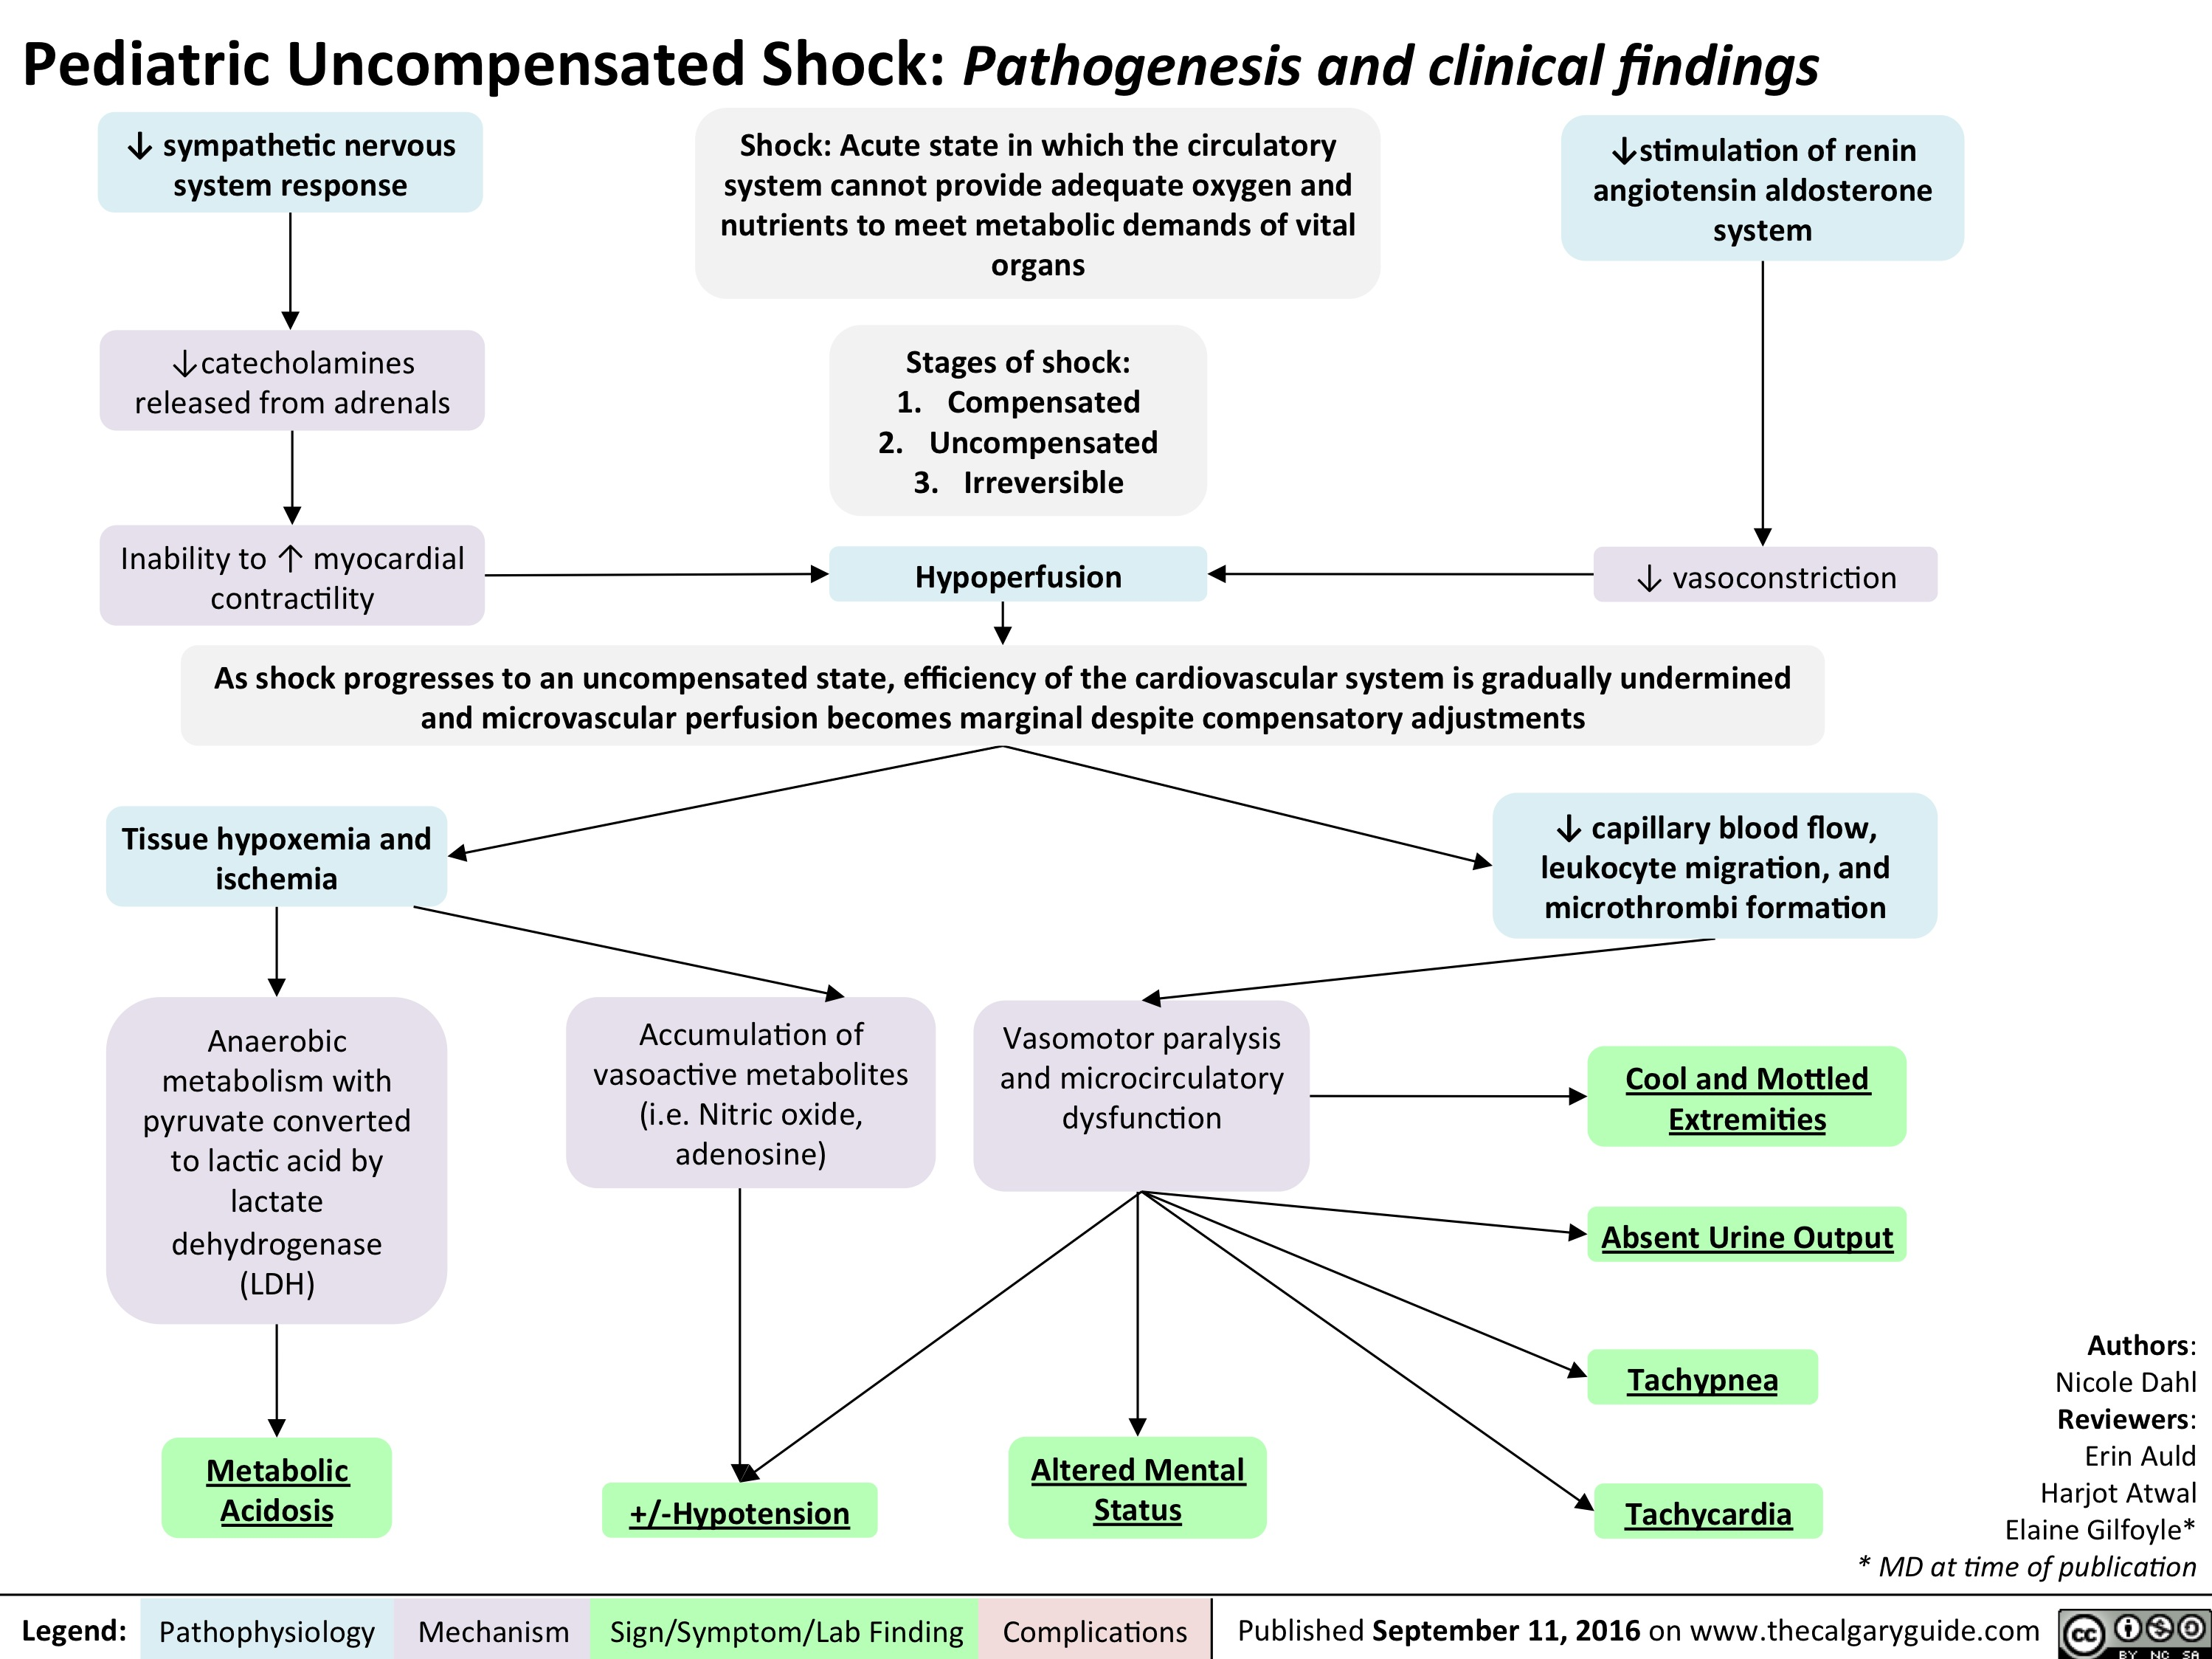 pediatric-uncompensated-shock-review